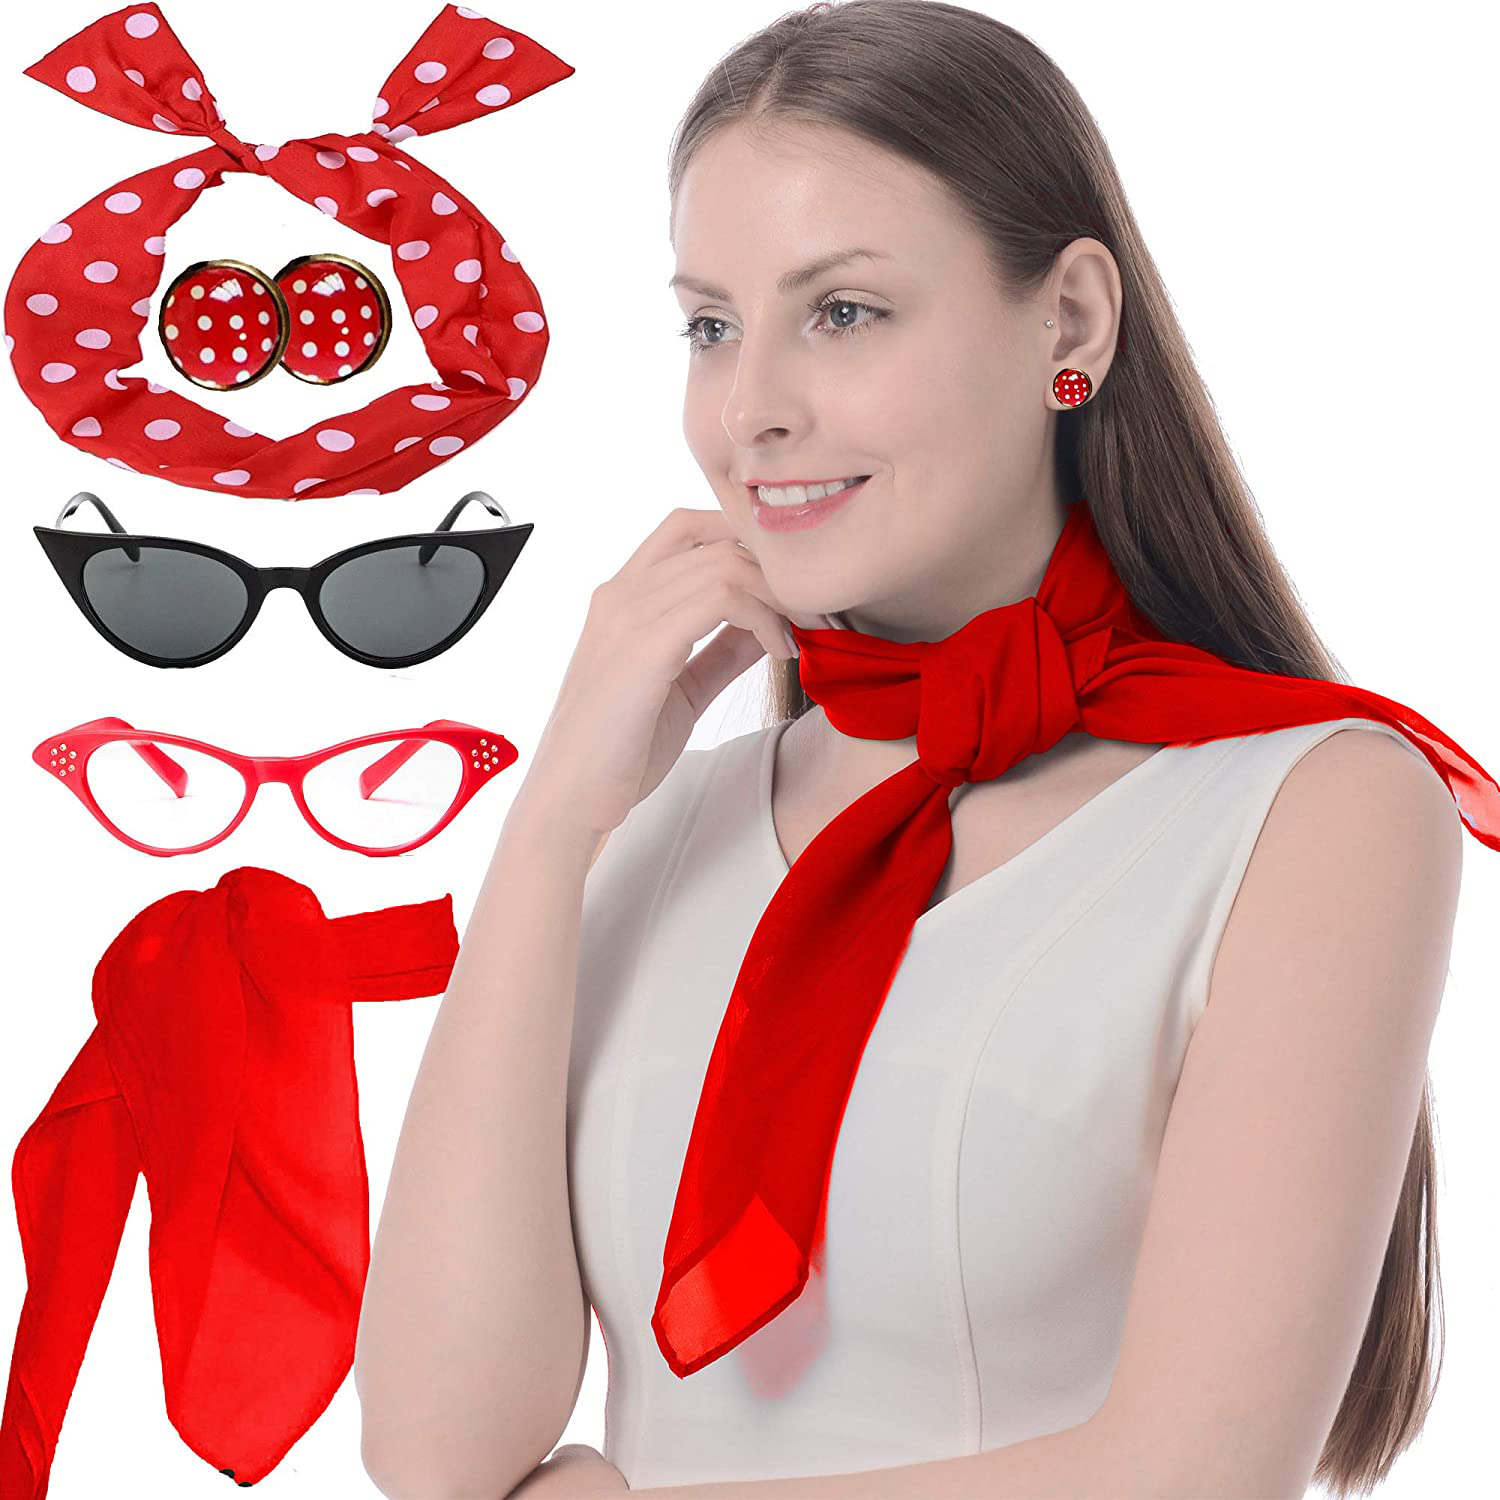 6 Pieces 1950s Accessories Headband Set Cat Eye Glasses Fancy Dress For Women